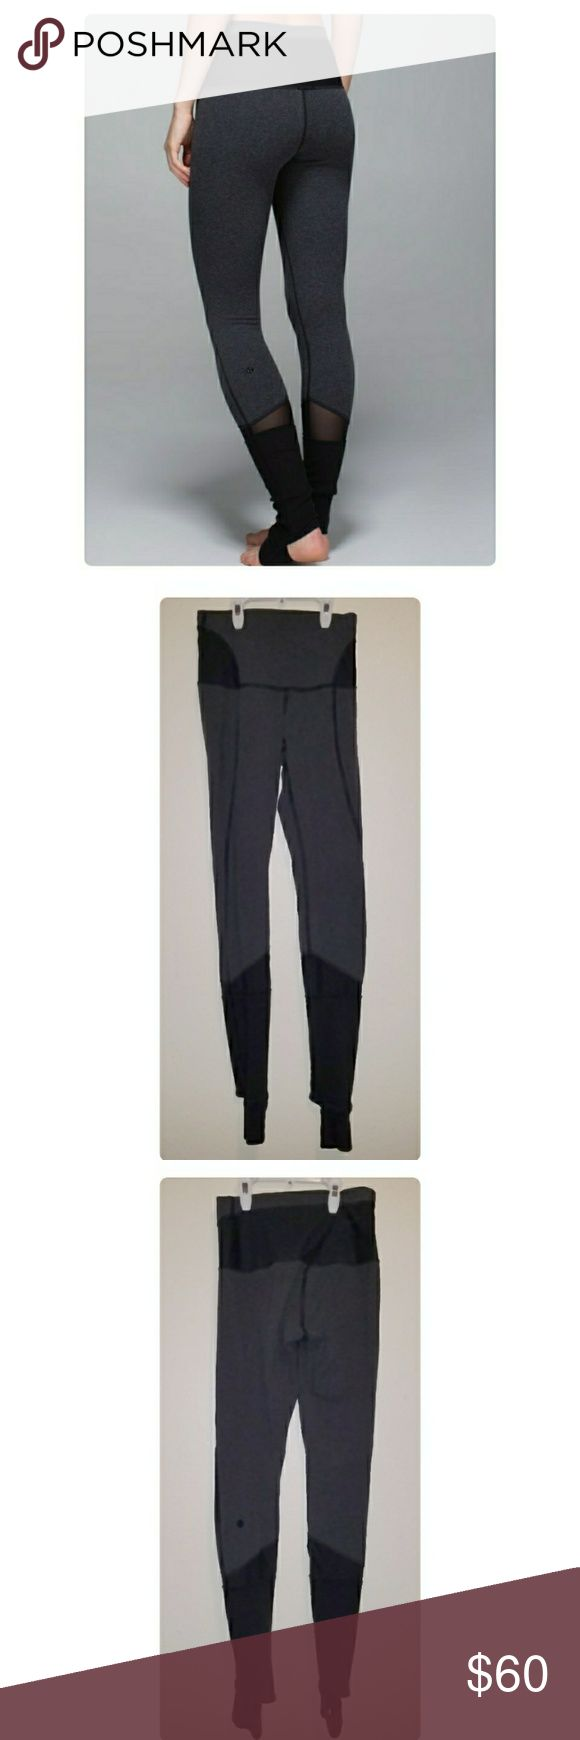 Lululemon devi yoga thick legging stirrup 6 Super cute and great for fall! From a smoke free home. lululemon athletica Pants Leggings